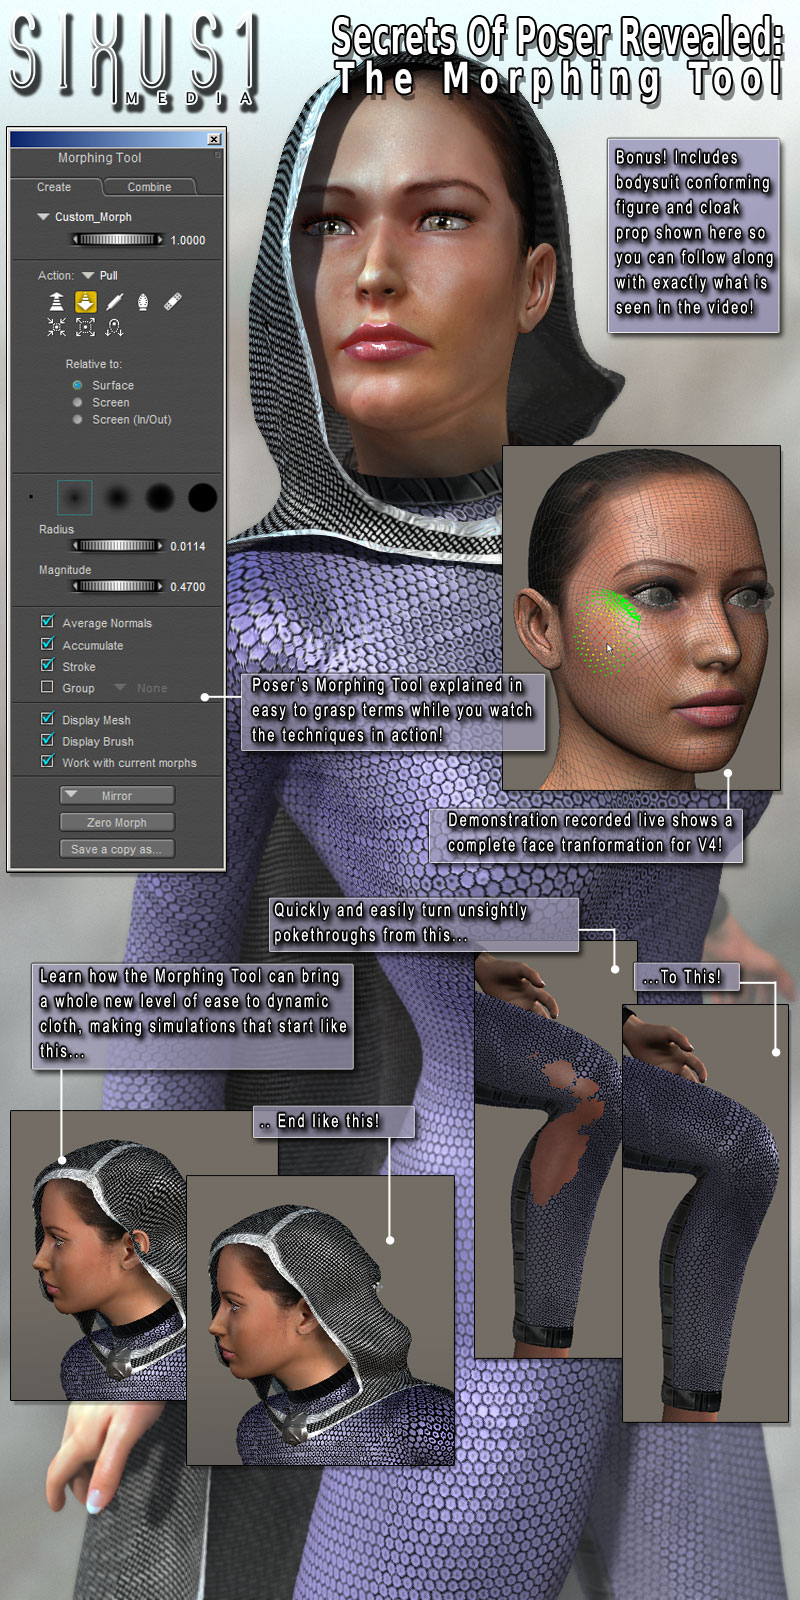 Secrets Of Poser Revealed: The Morphing Tool